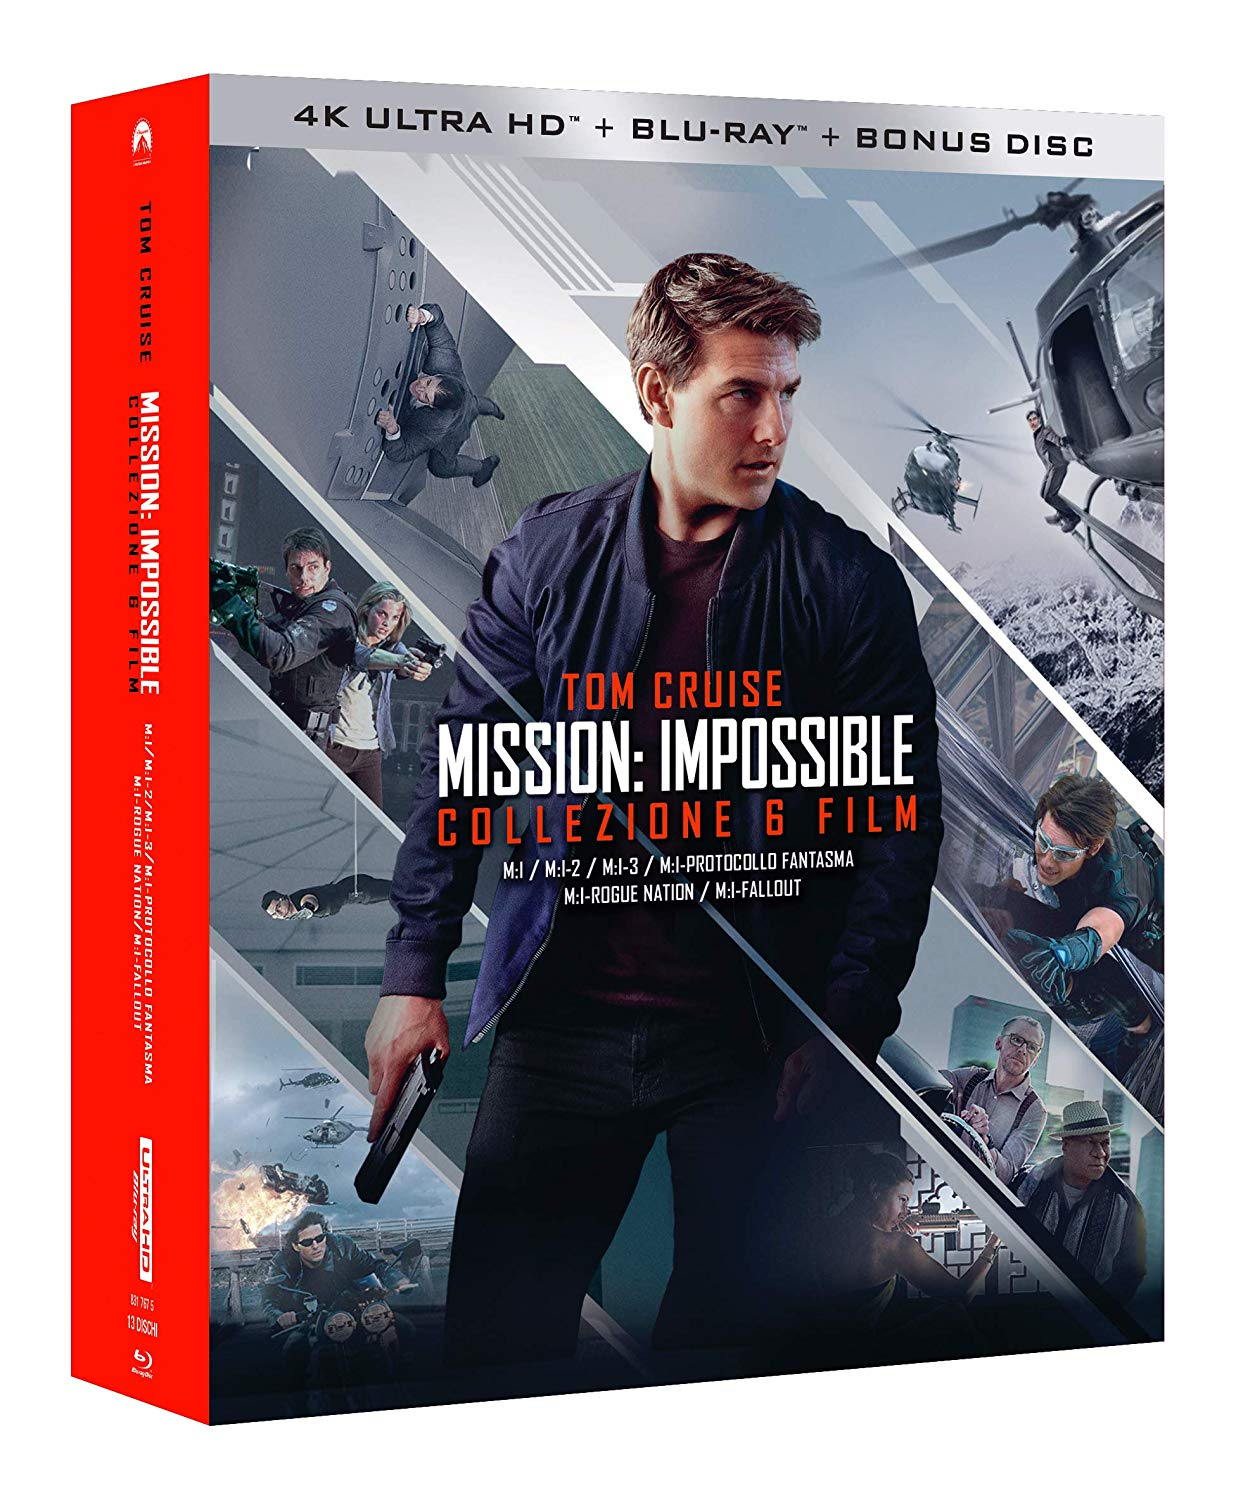 COF.MISSION IMPOSSIBLE COLLECTION (6 BLU-RAY 4K ULTRA HD+7 BLU-R